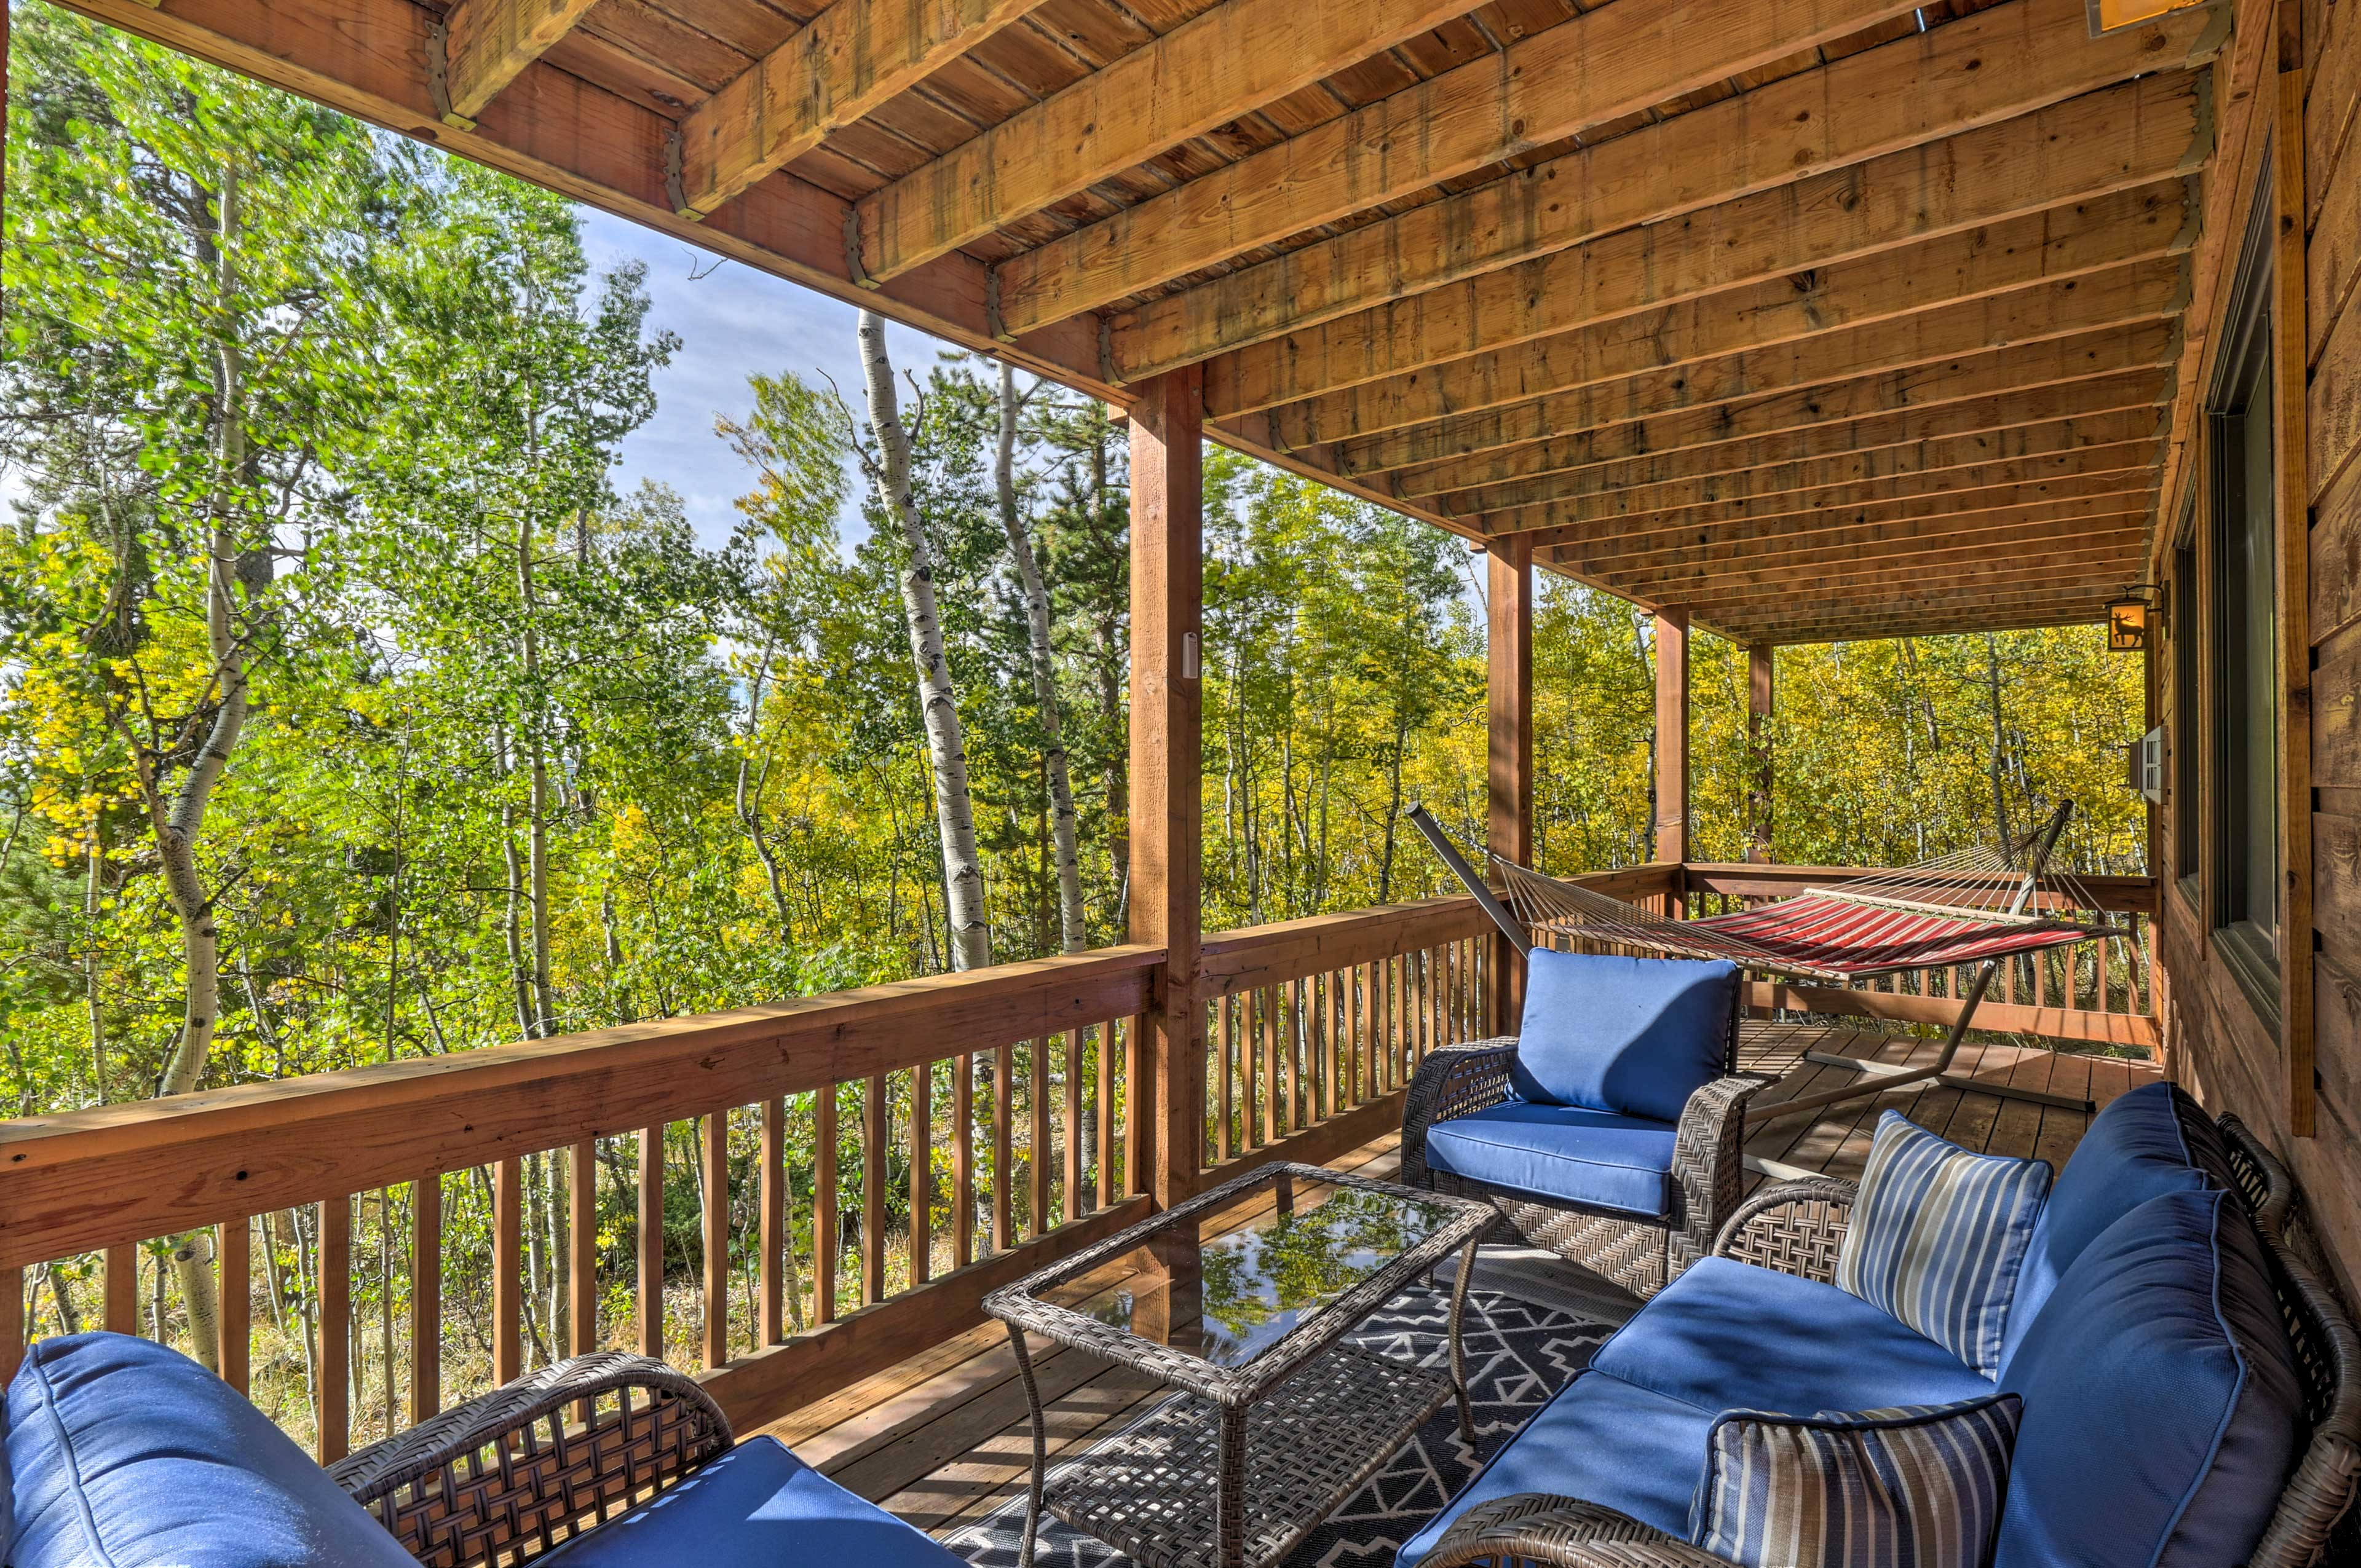 This spacious cabin-style home on 4.3 acres boasts nearly 2,600 sq feet.